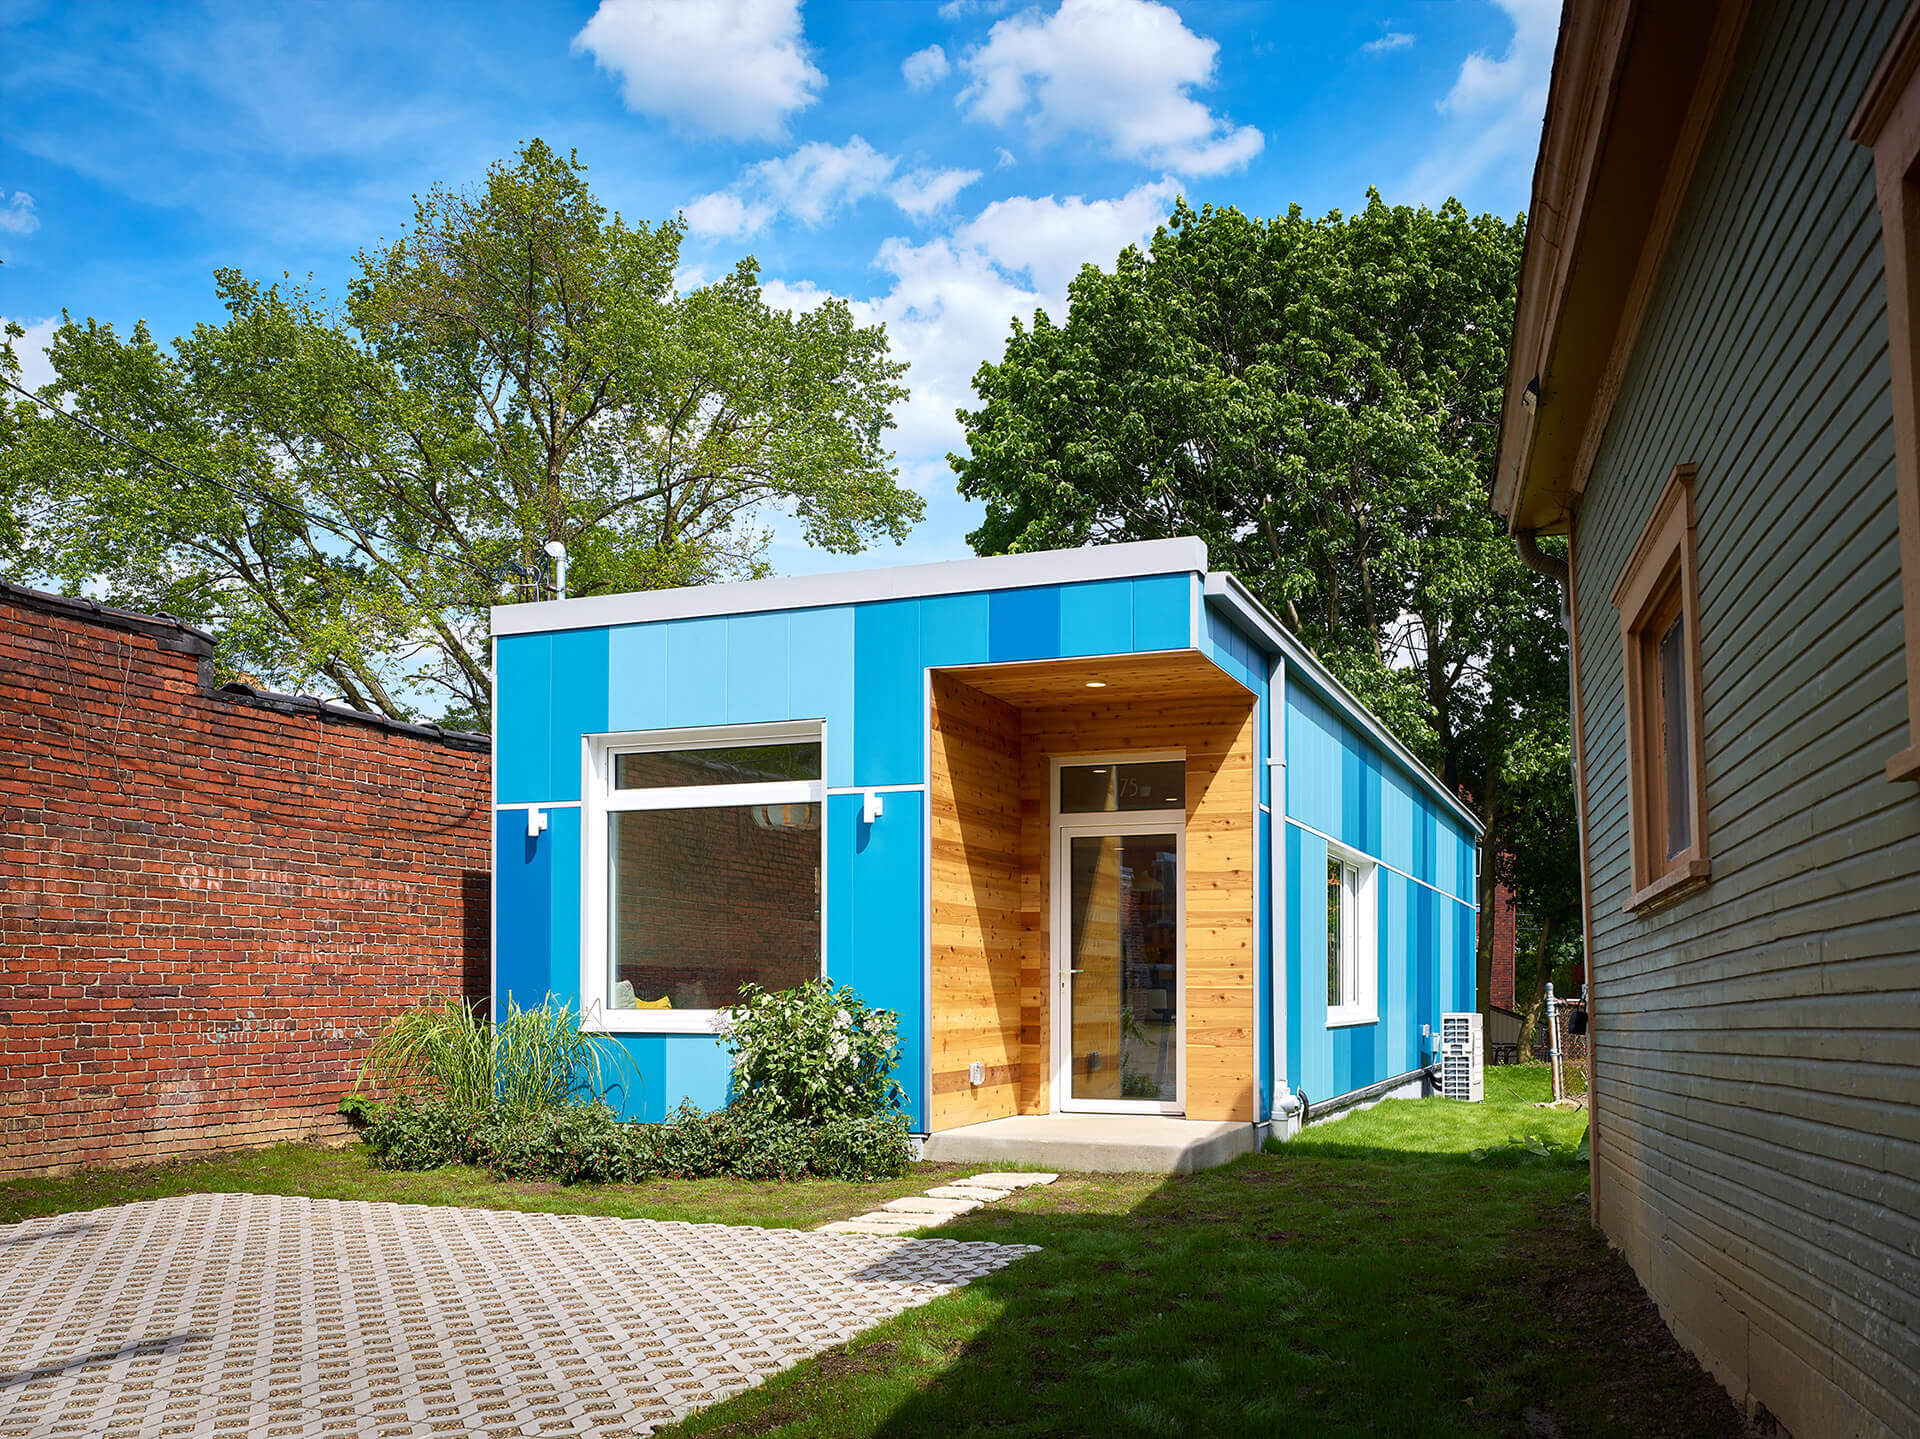 Small modular home with vertical blue custom color Illumination panels in a variety of shades